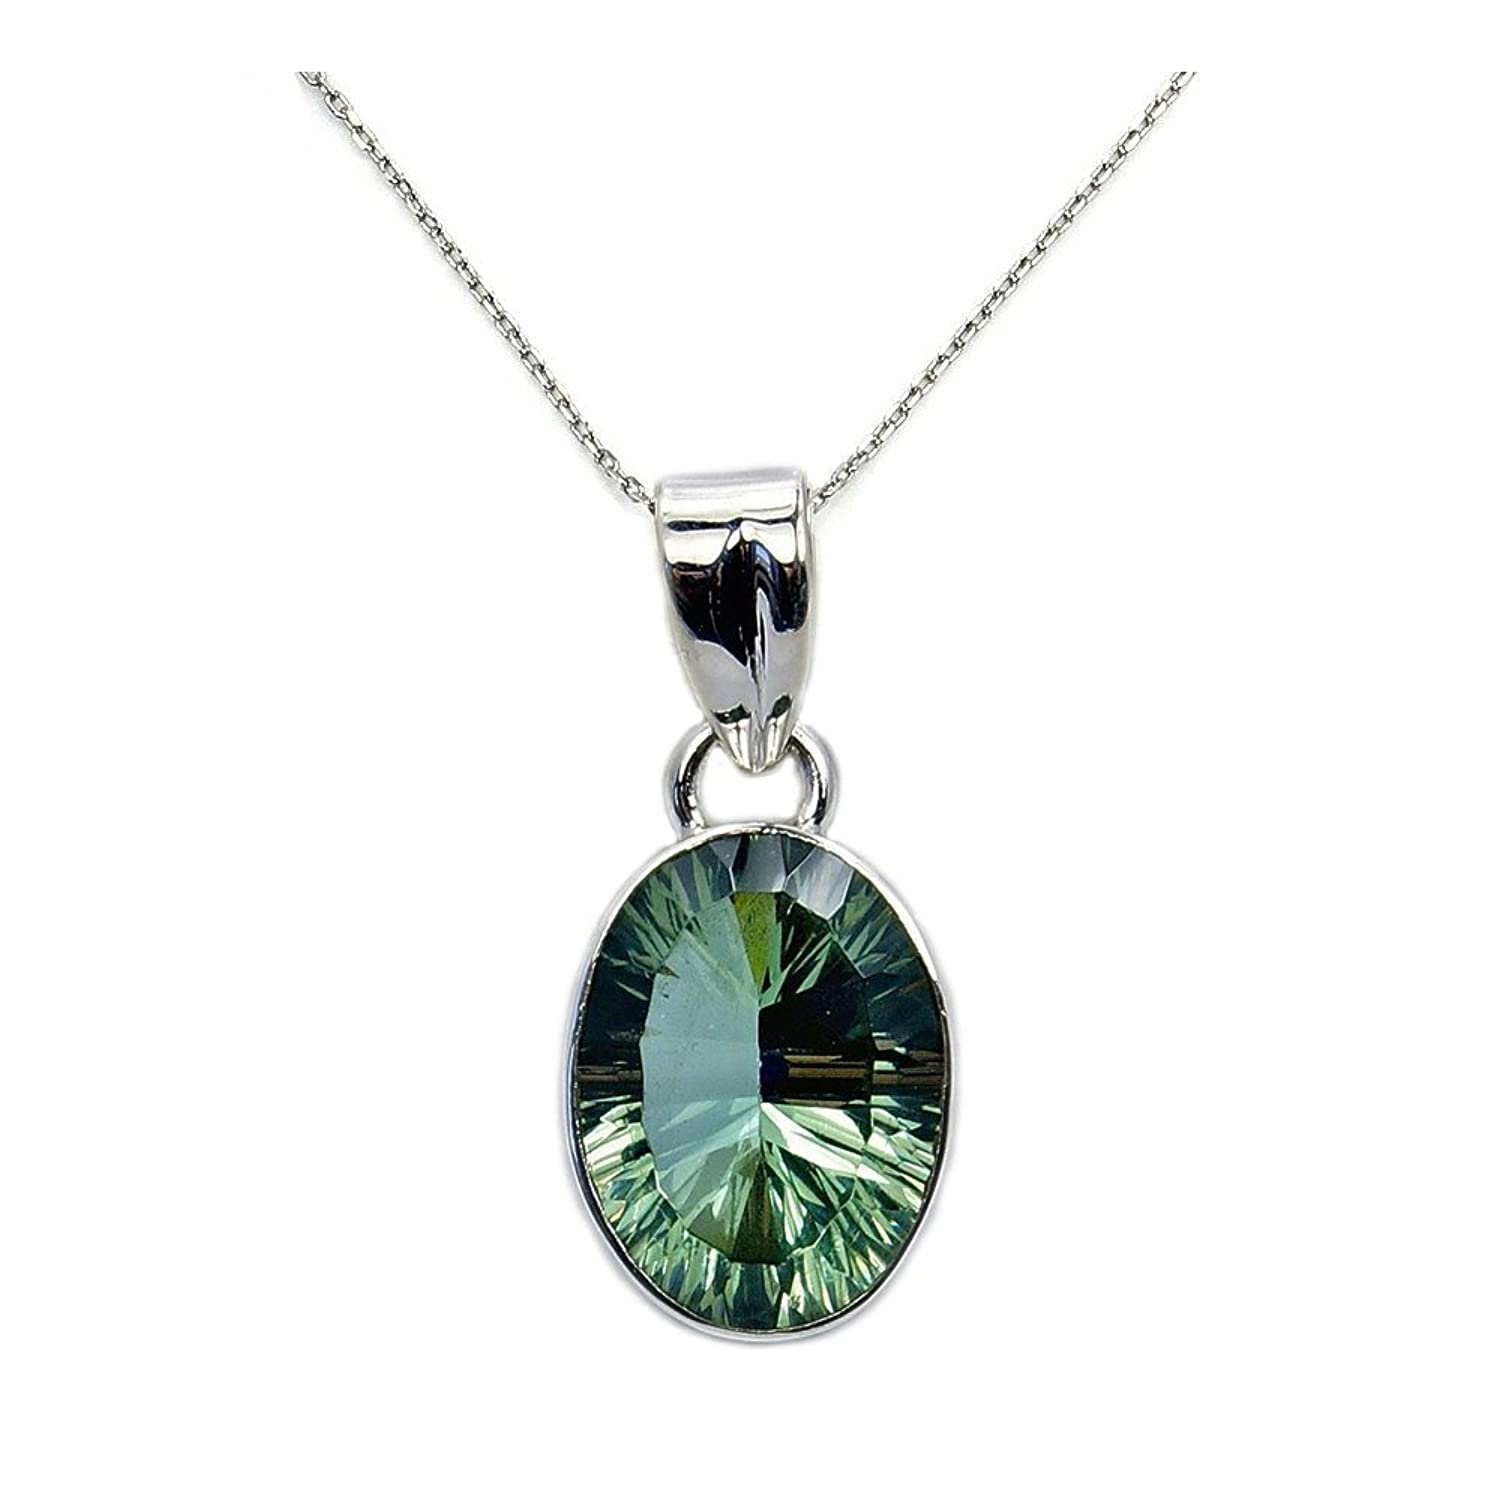 chameleon jewelry russian alexandrite mardon jewelers daylight the alex of gemstone custom gemstones blog necklace